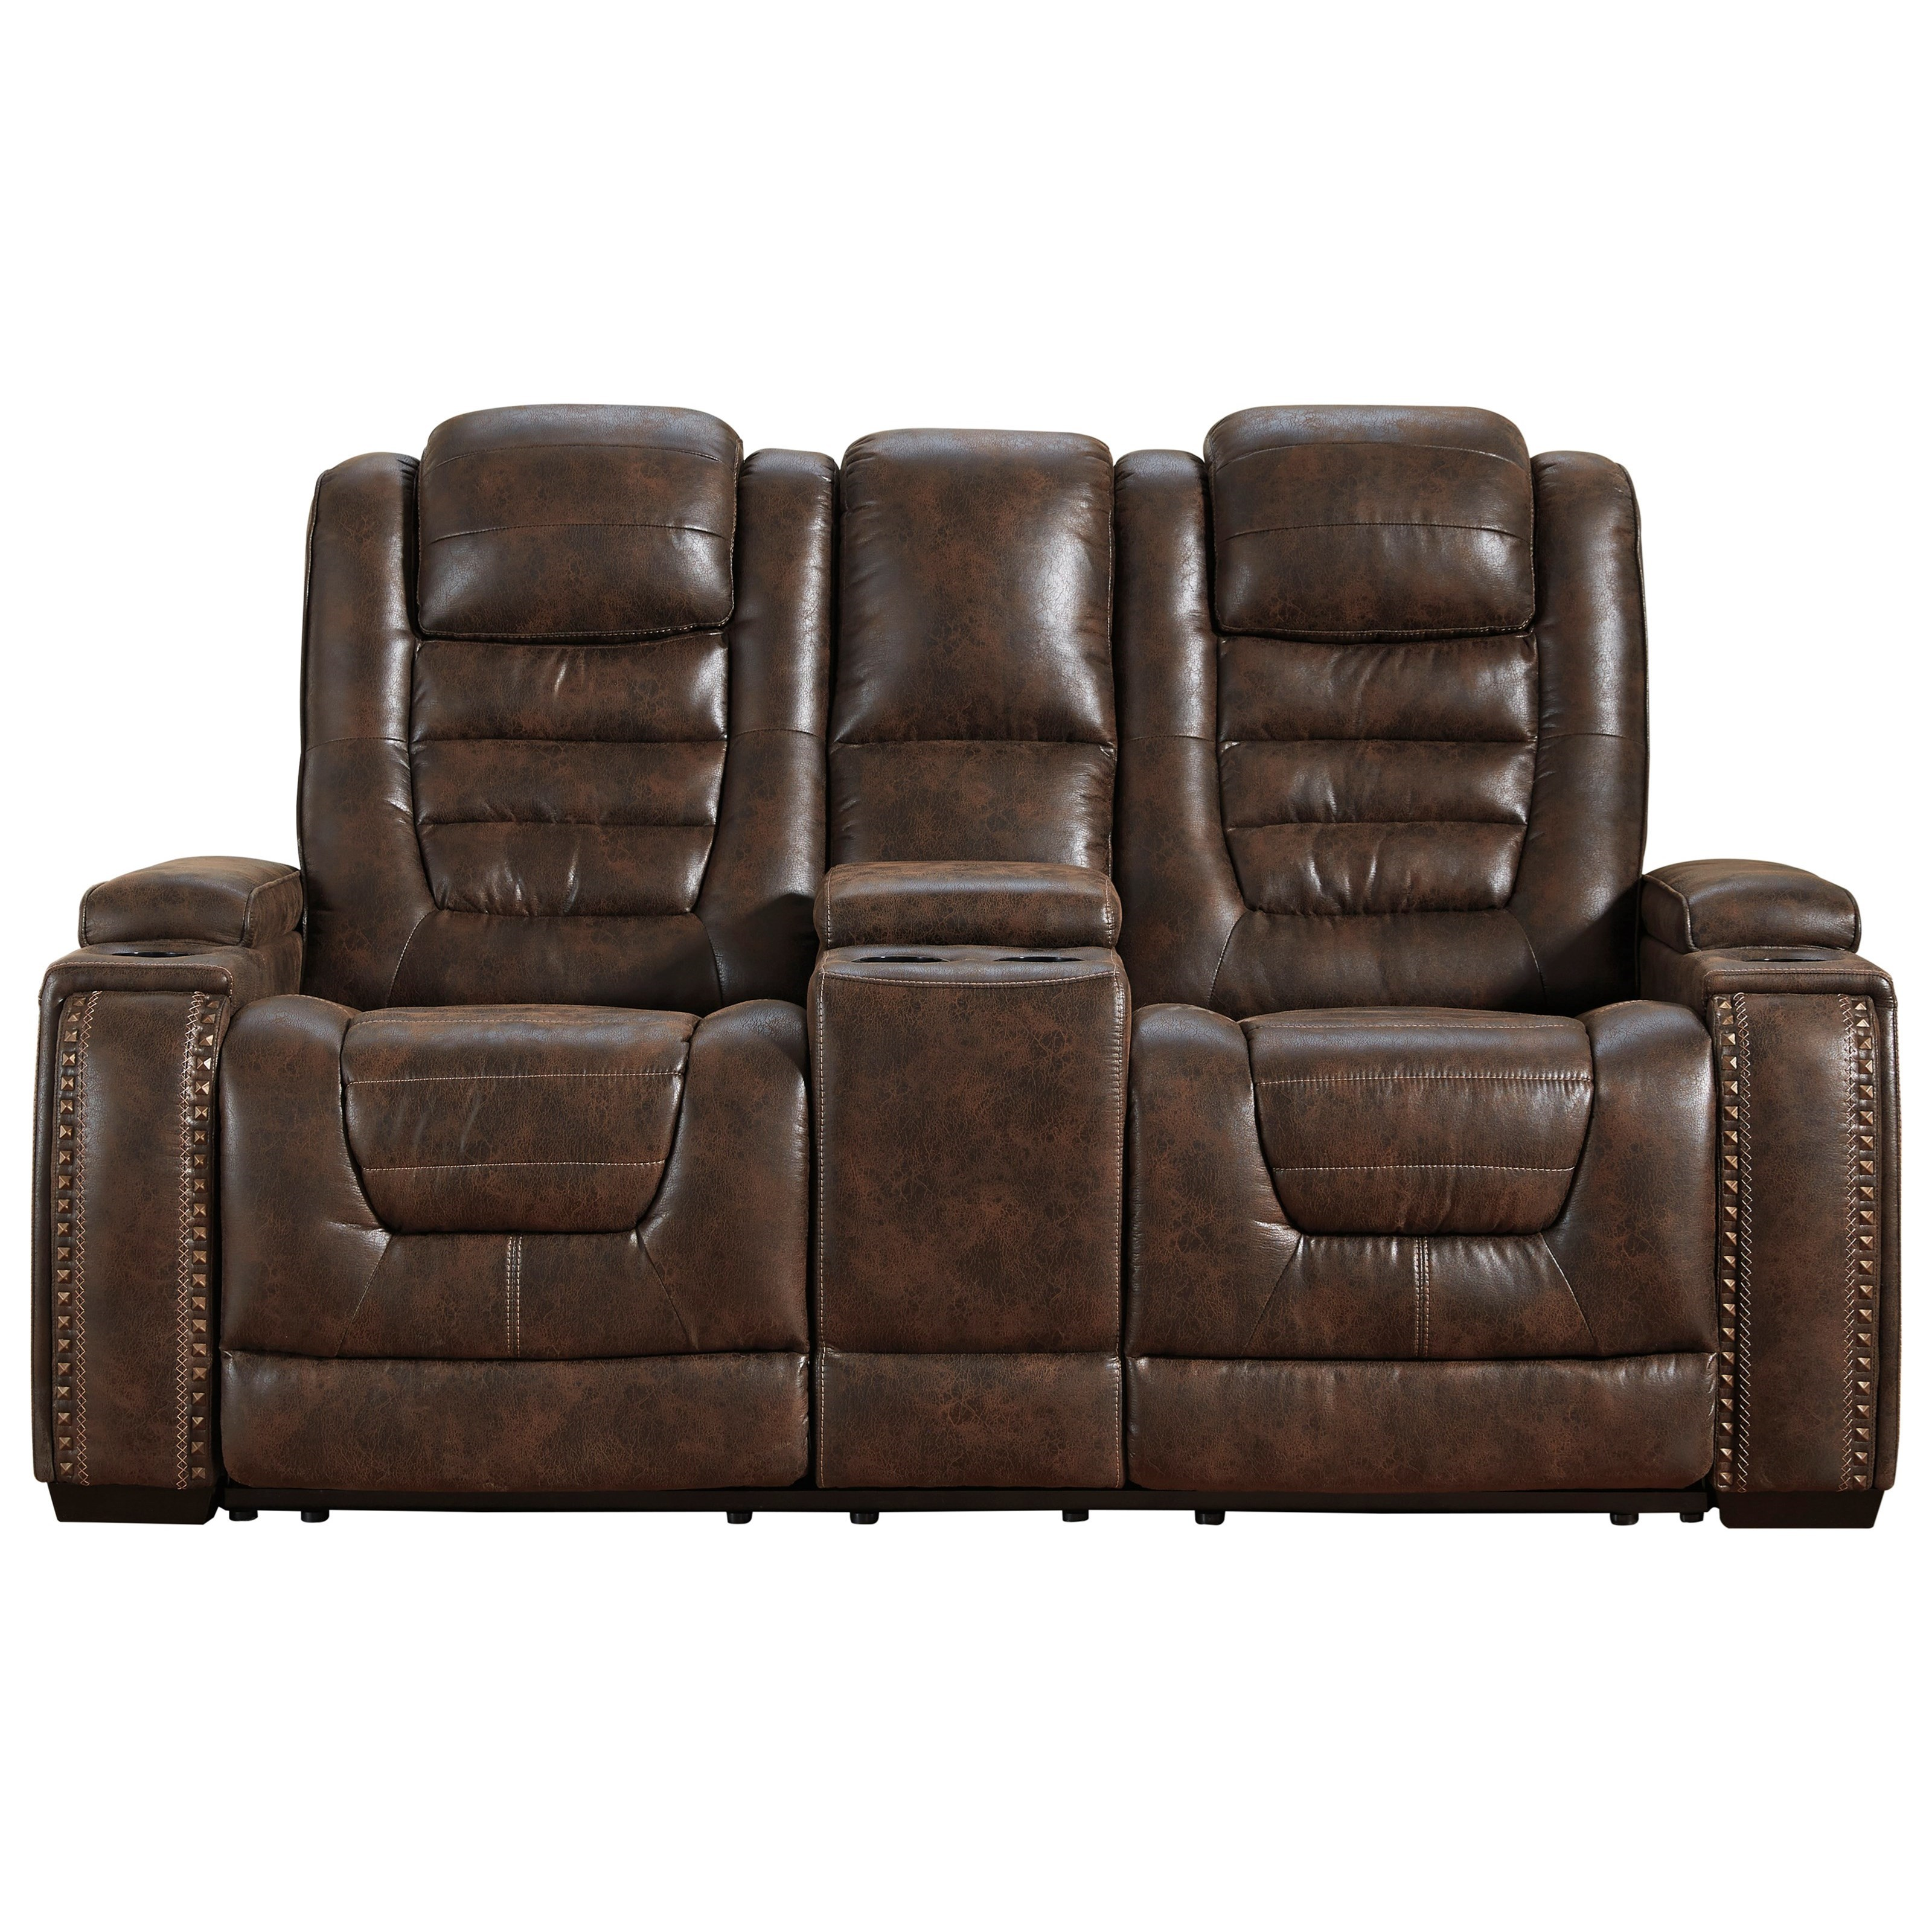 Game Zone Power Reclining Loveseat w/ Cnsl & Adj Hdrst by Signature Design by Ashley at Northeast Factory Direct